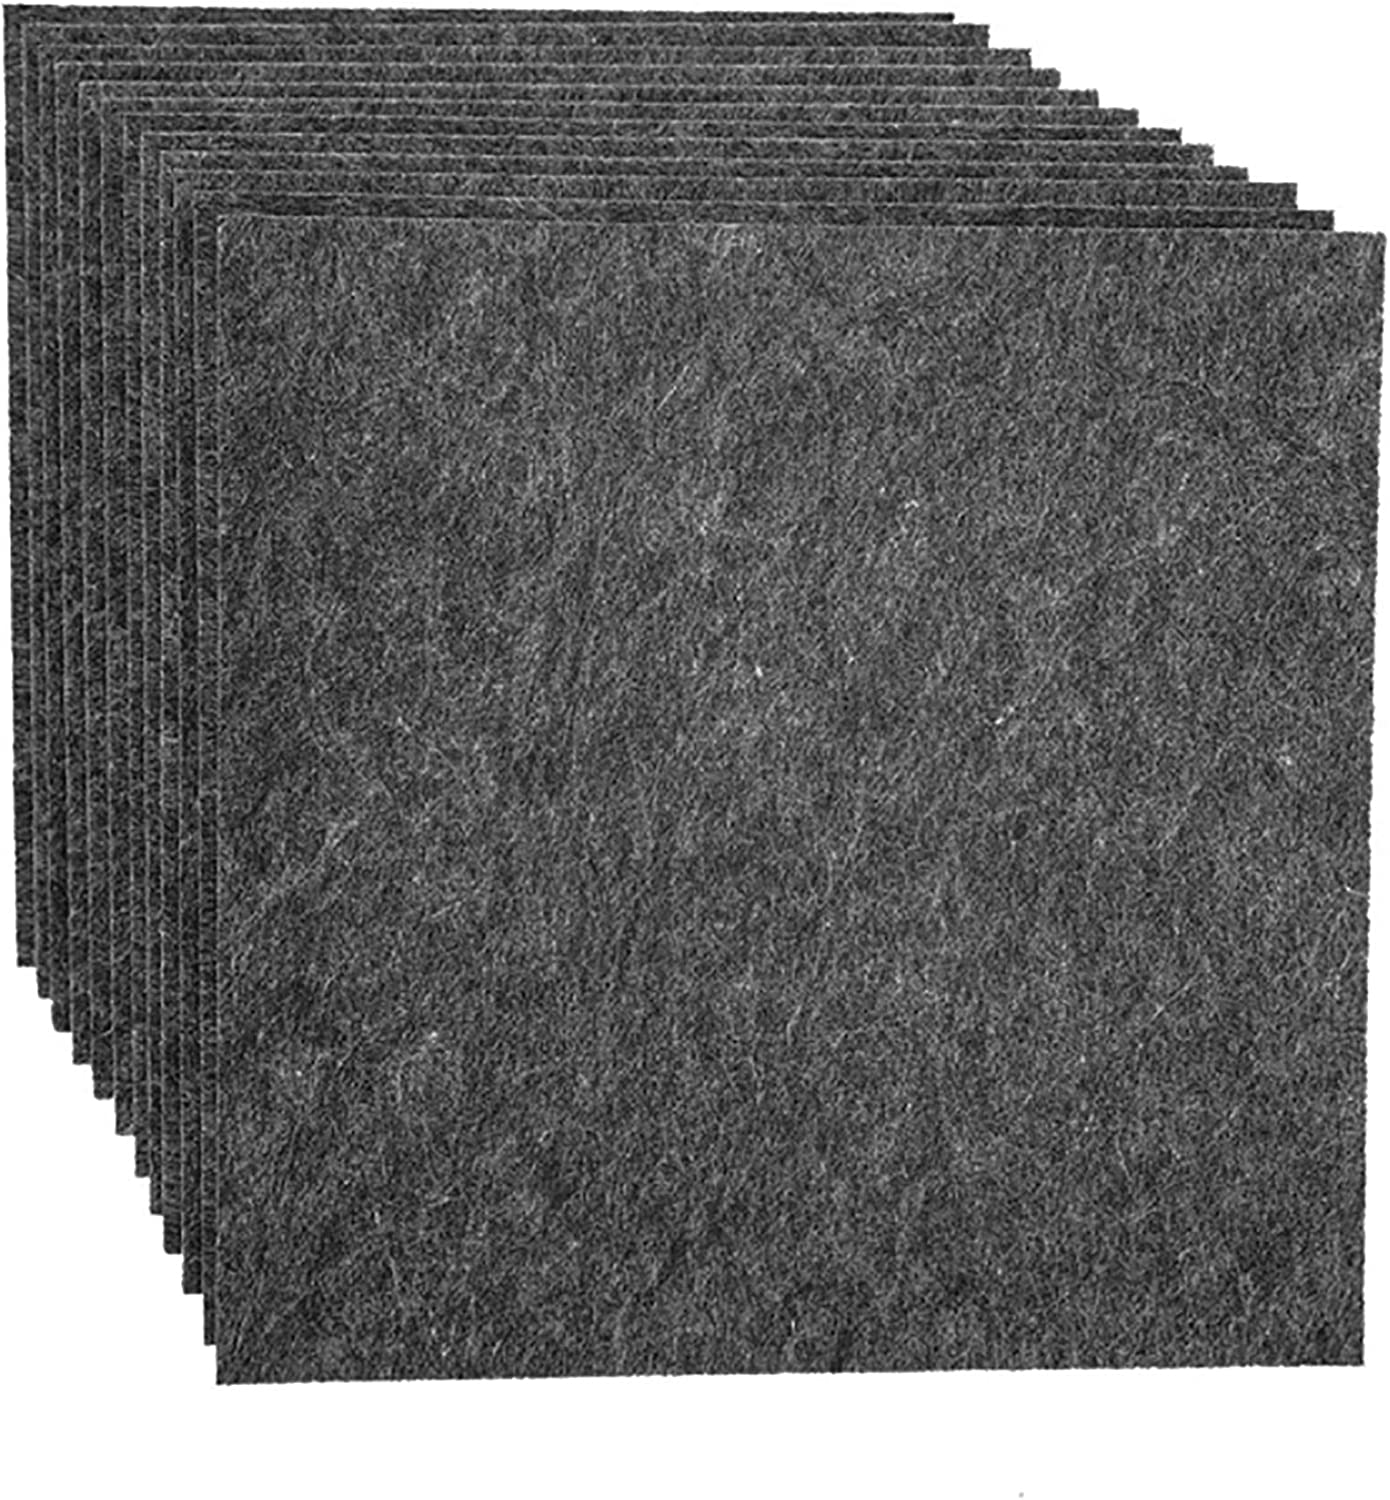 12 Pack Set Acoustic Absorption Panel, 12 X 12 X 0.4 Inches Dark Grey Acoustic Soundproofing Insulation Panel Tiles, Acoustic Treatment Used in Home & Offices